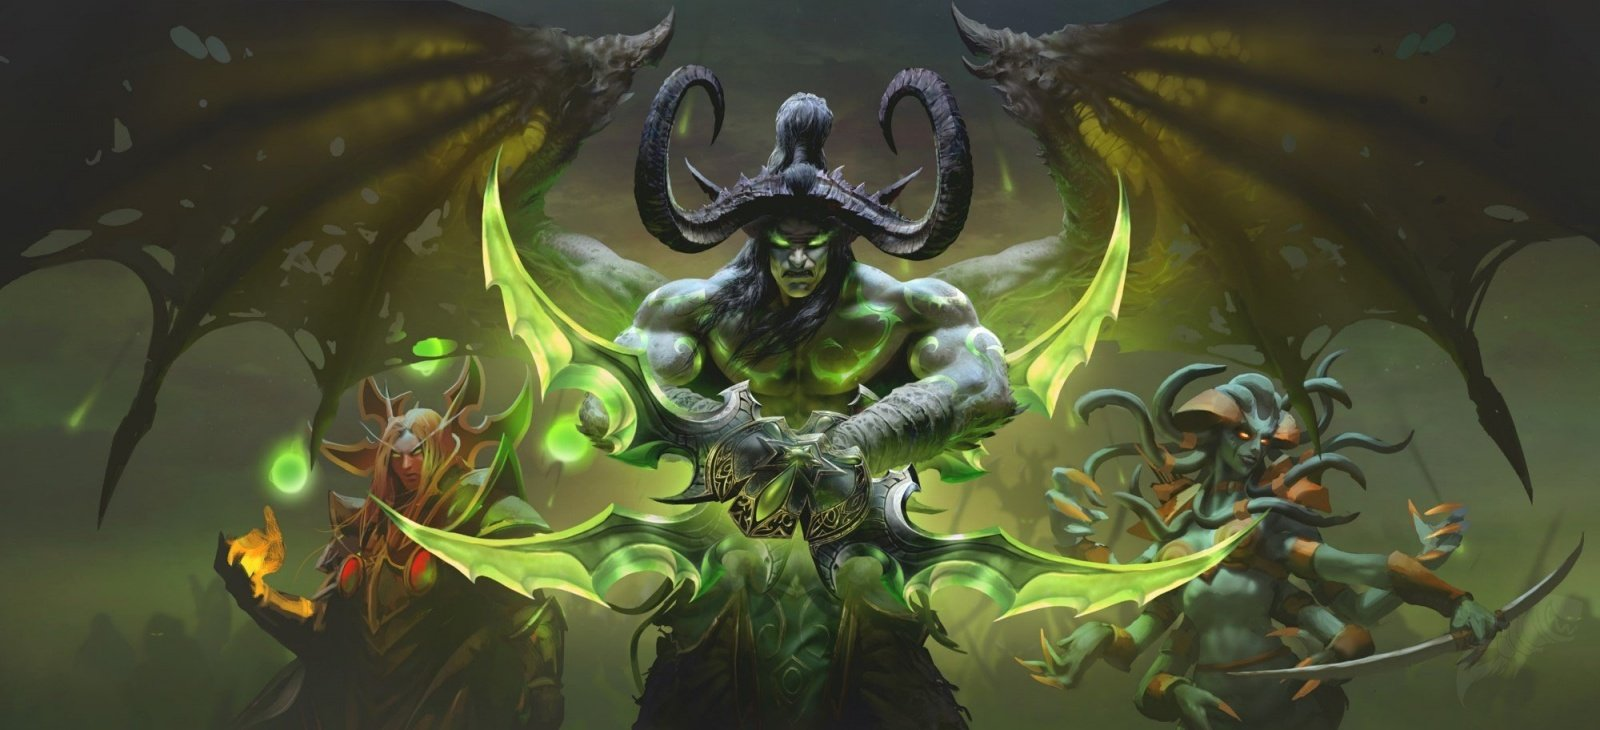 WoW: Classic Burning Crusade is launching way sooner than expected, with unfortunate character cloning fees